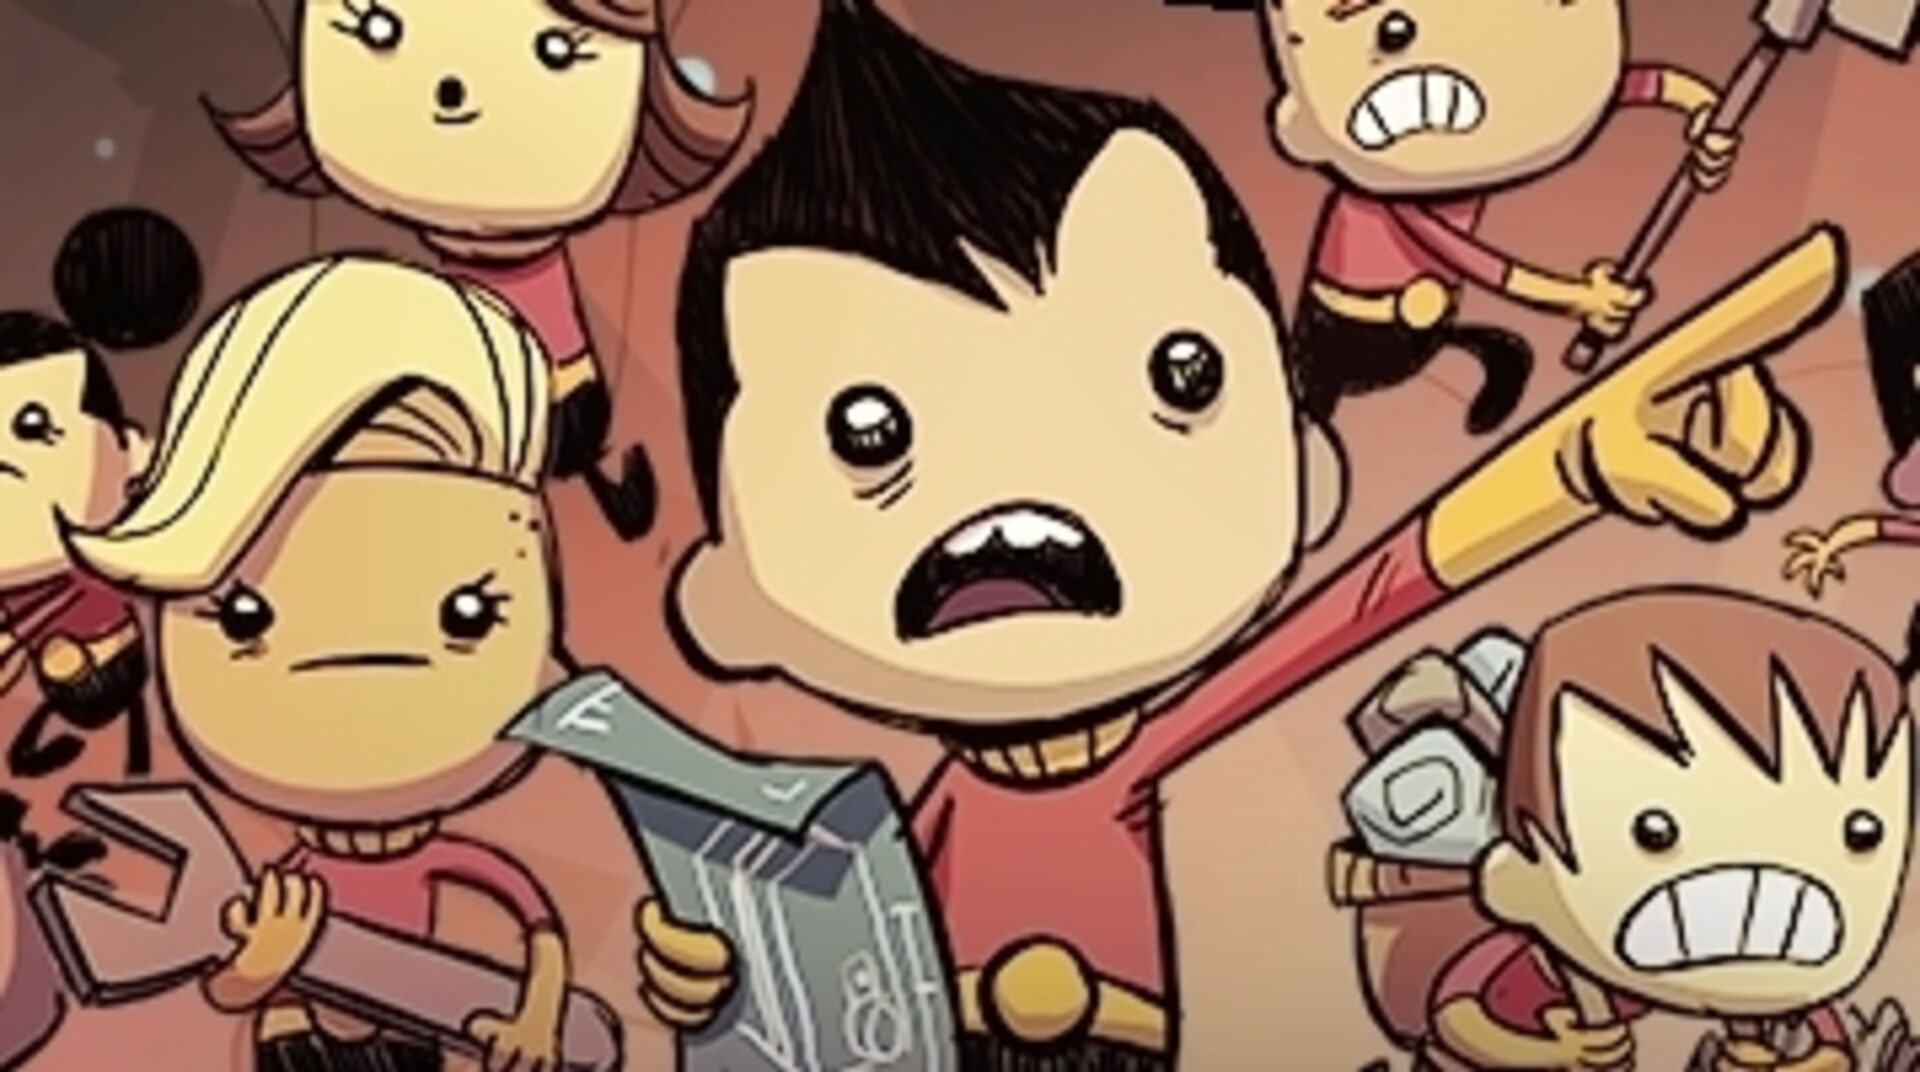 Oxygen Not Included: another sadistic banger from the masters of